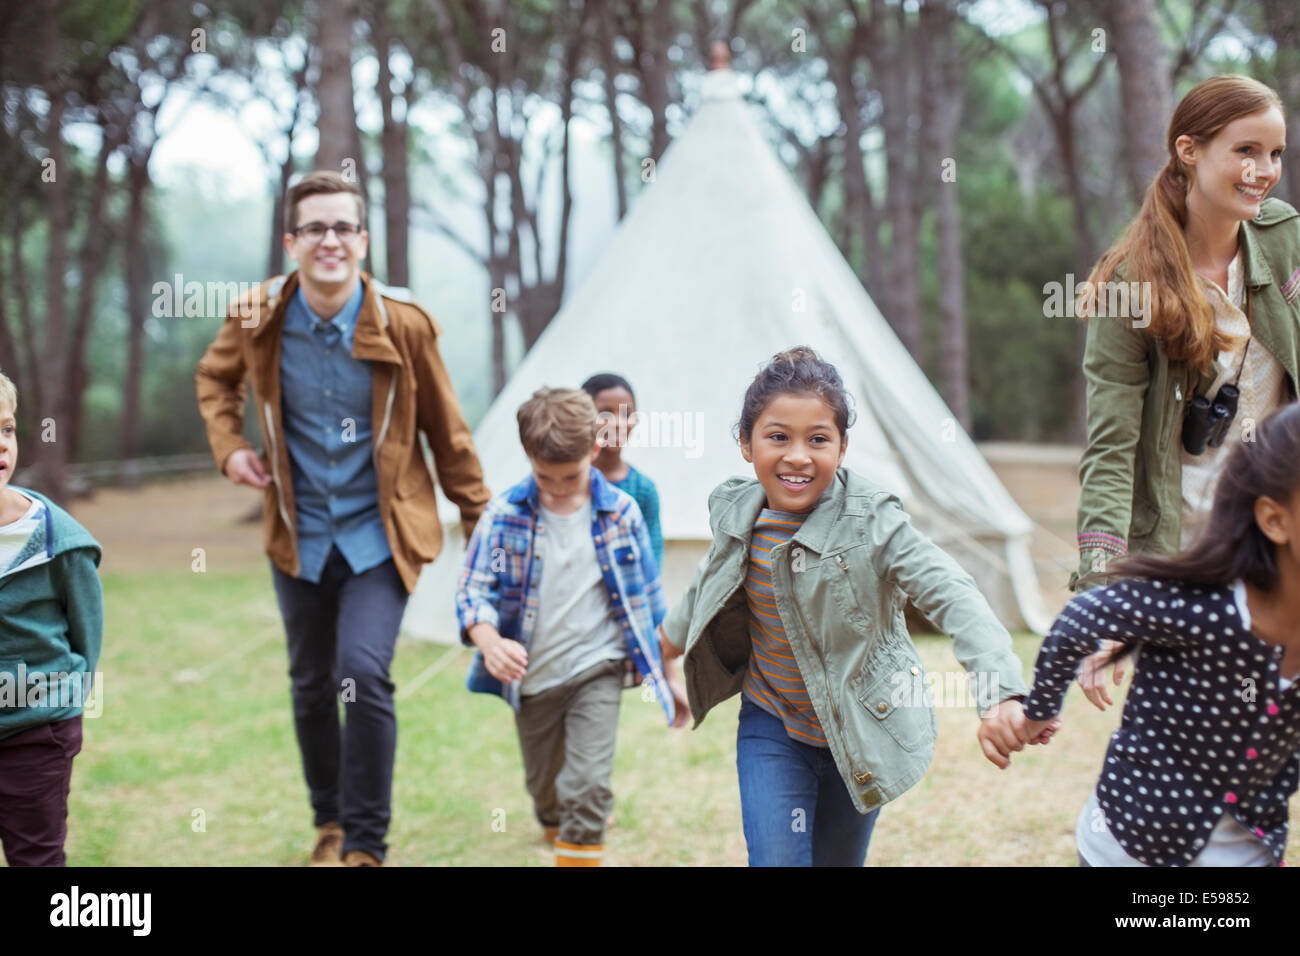 Teachers and students walking in forest - Stock Image